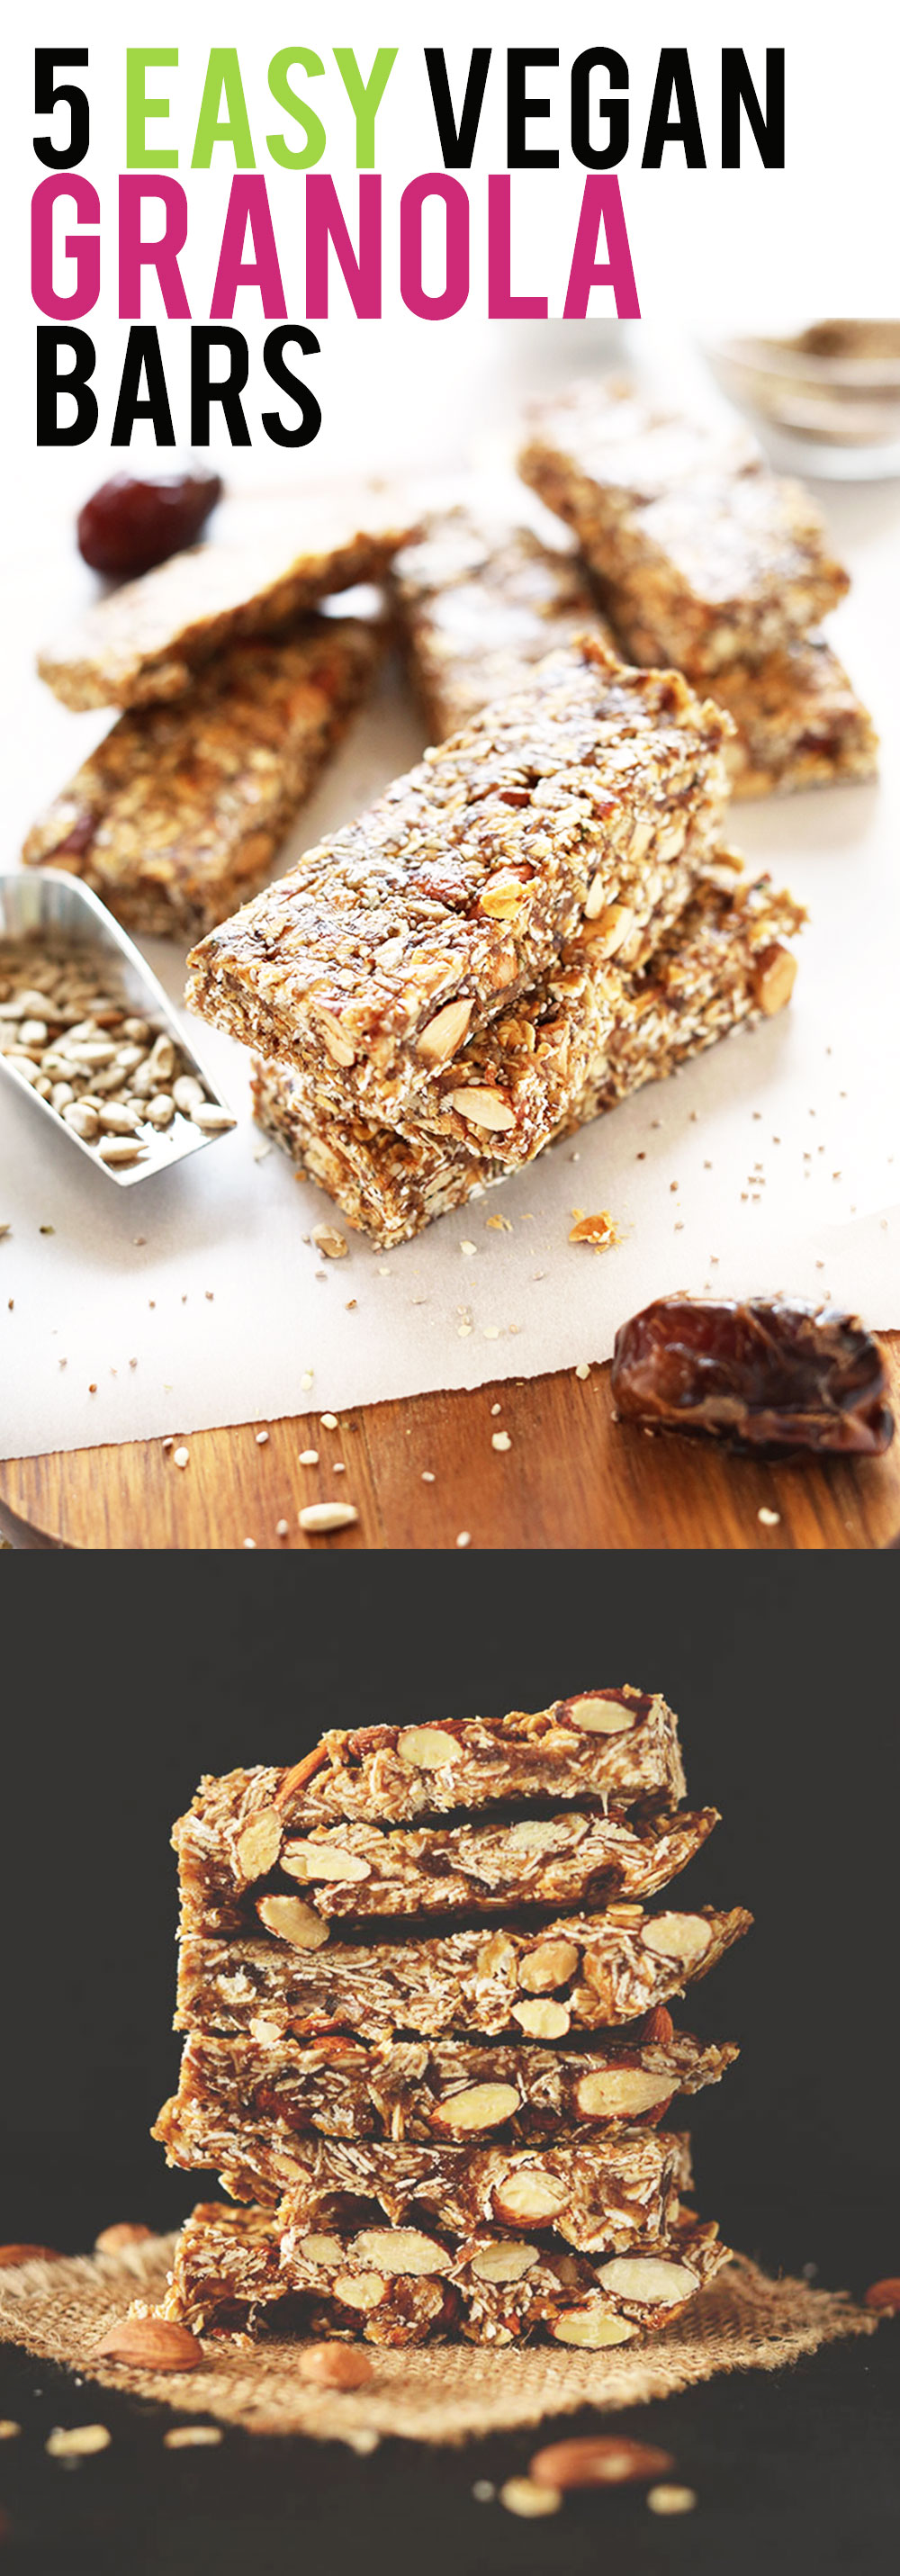 5 EASY Vegan Granola Bar recipes. Wholesome ingredients, simple preparation and BIG flavor! #vegan